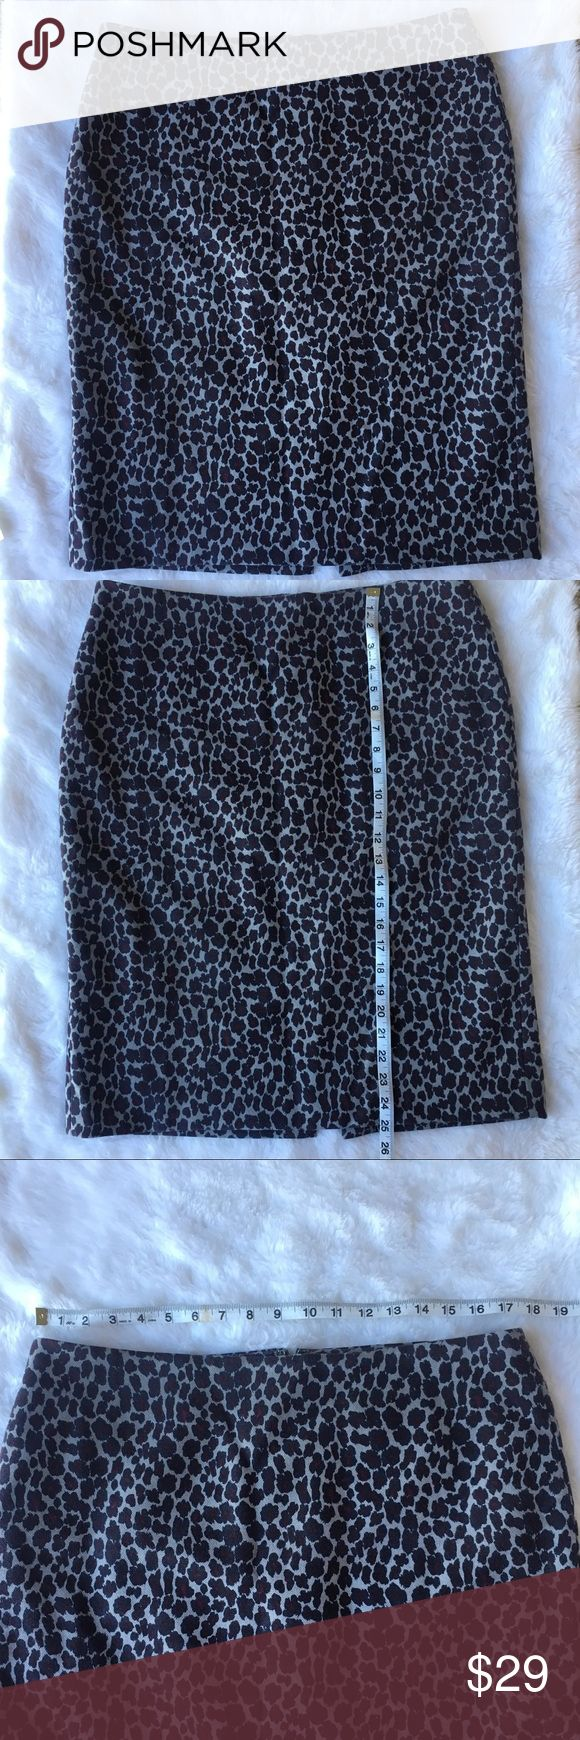 Talbots Ocelot Print Purple Pencil Skirt 14 Talbots pencil skirt in size 14. Leopard/ocelot/animal print. Zipper back and slit in back. Double lined. Measurements are in photos. Looks sleek with a blouse and blazer! Please see photos for measurements. Everything comes from a pet and smoke free home. Preowned- no rips or stains. Talbots Skirts Pencil